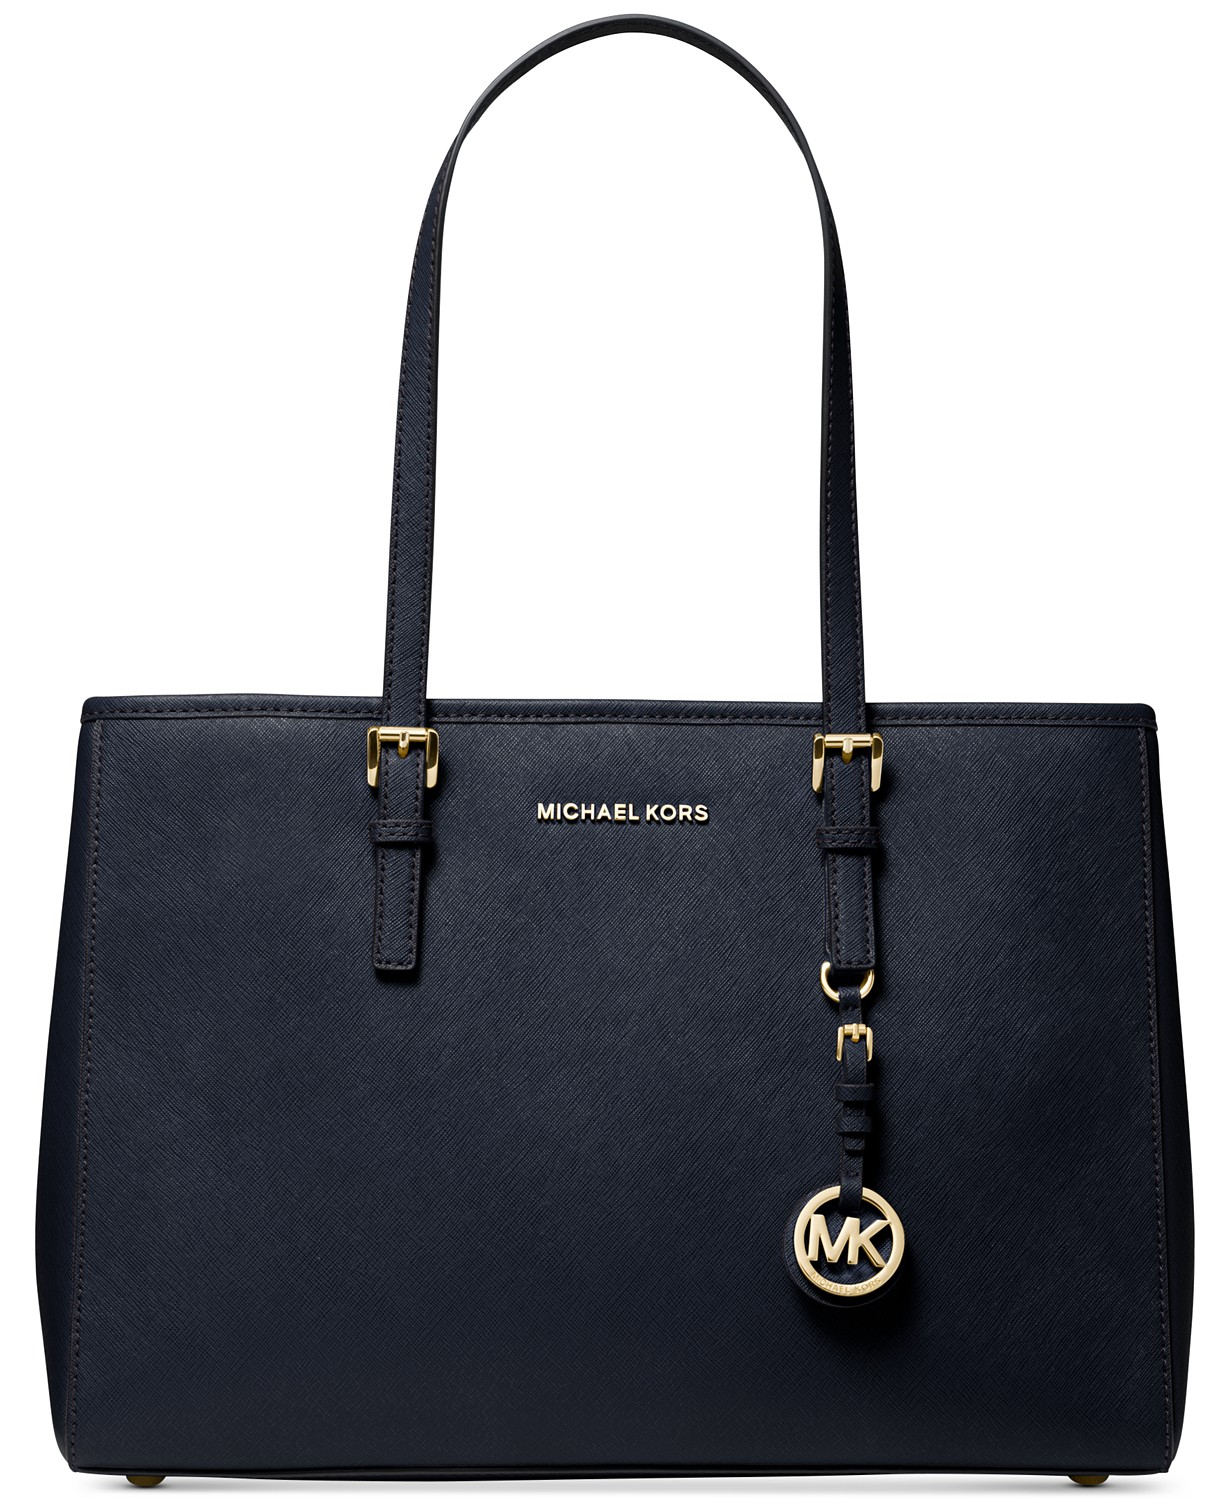 Michael Kors Bag Sale